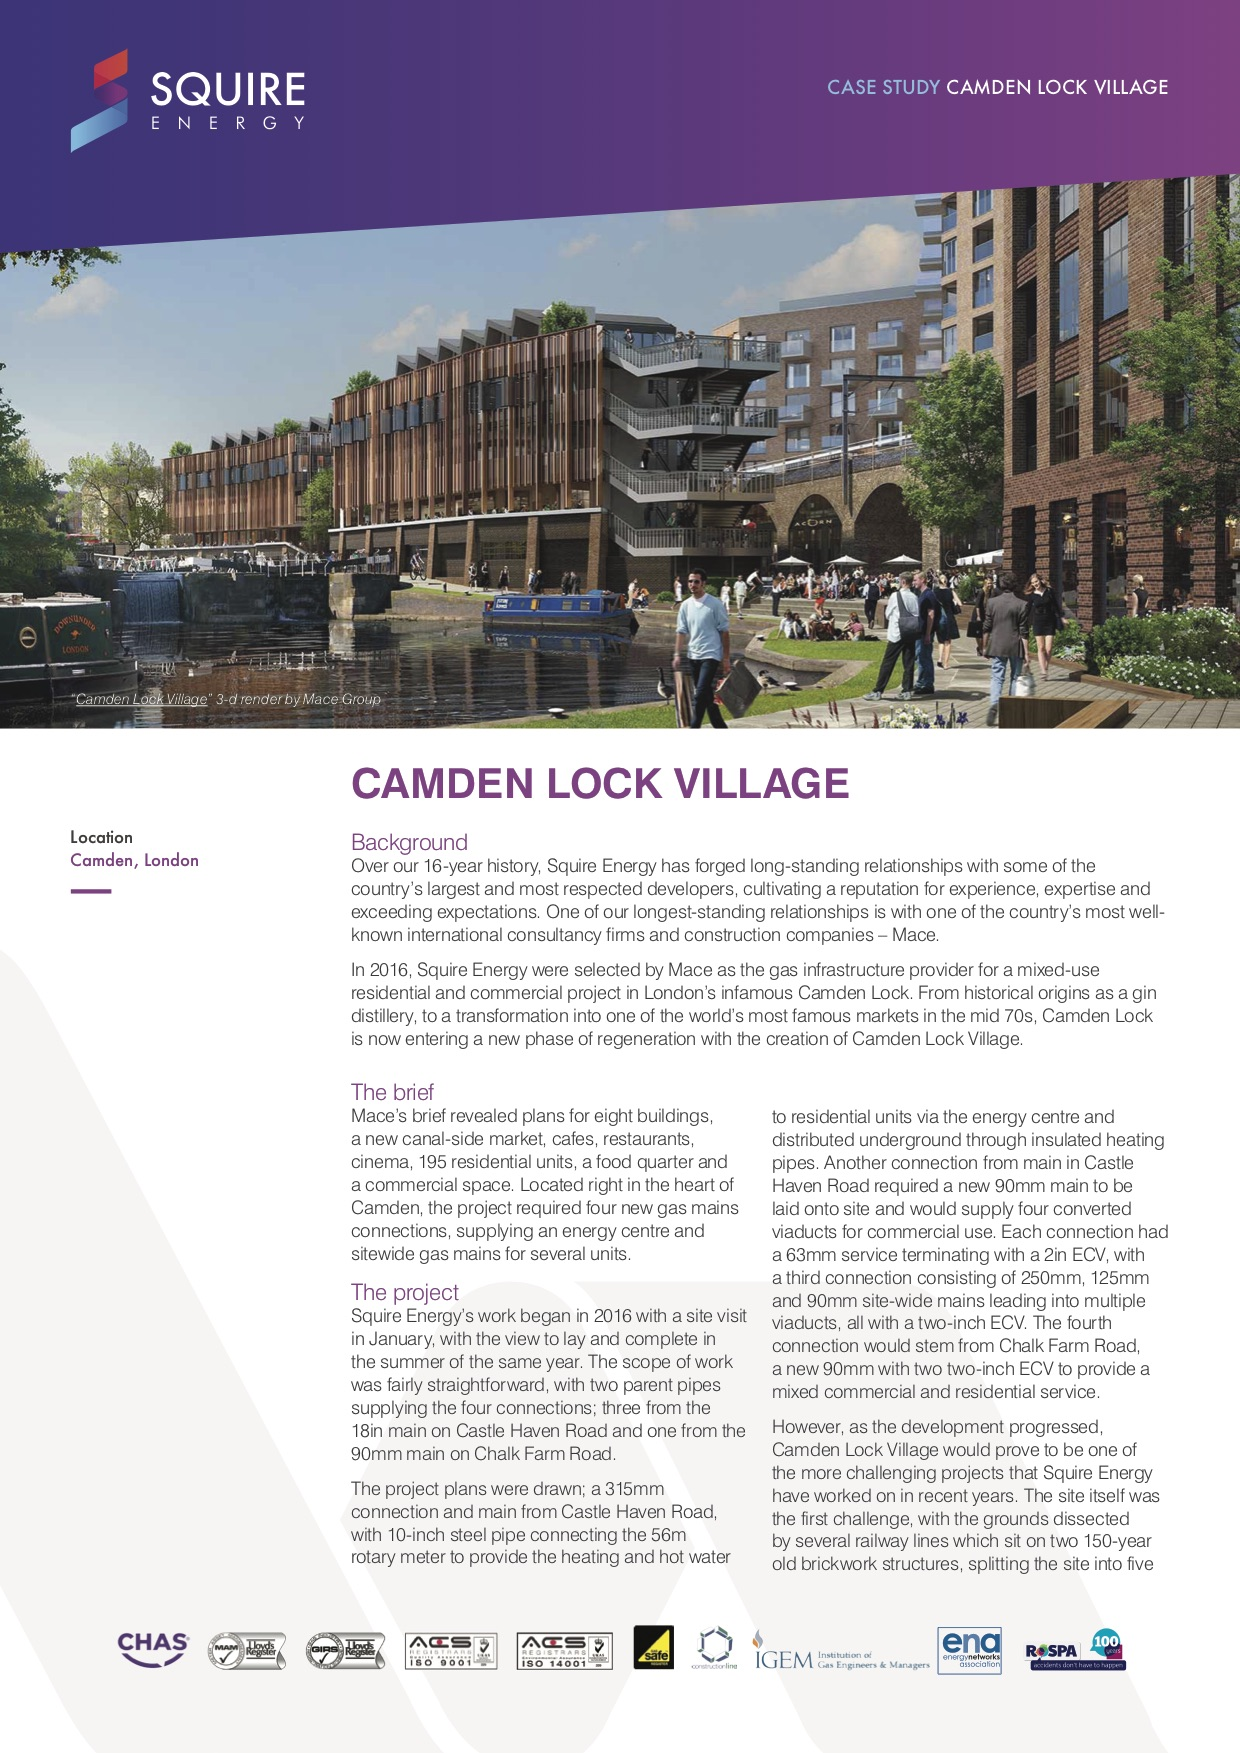 camden lock village case-study